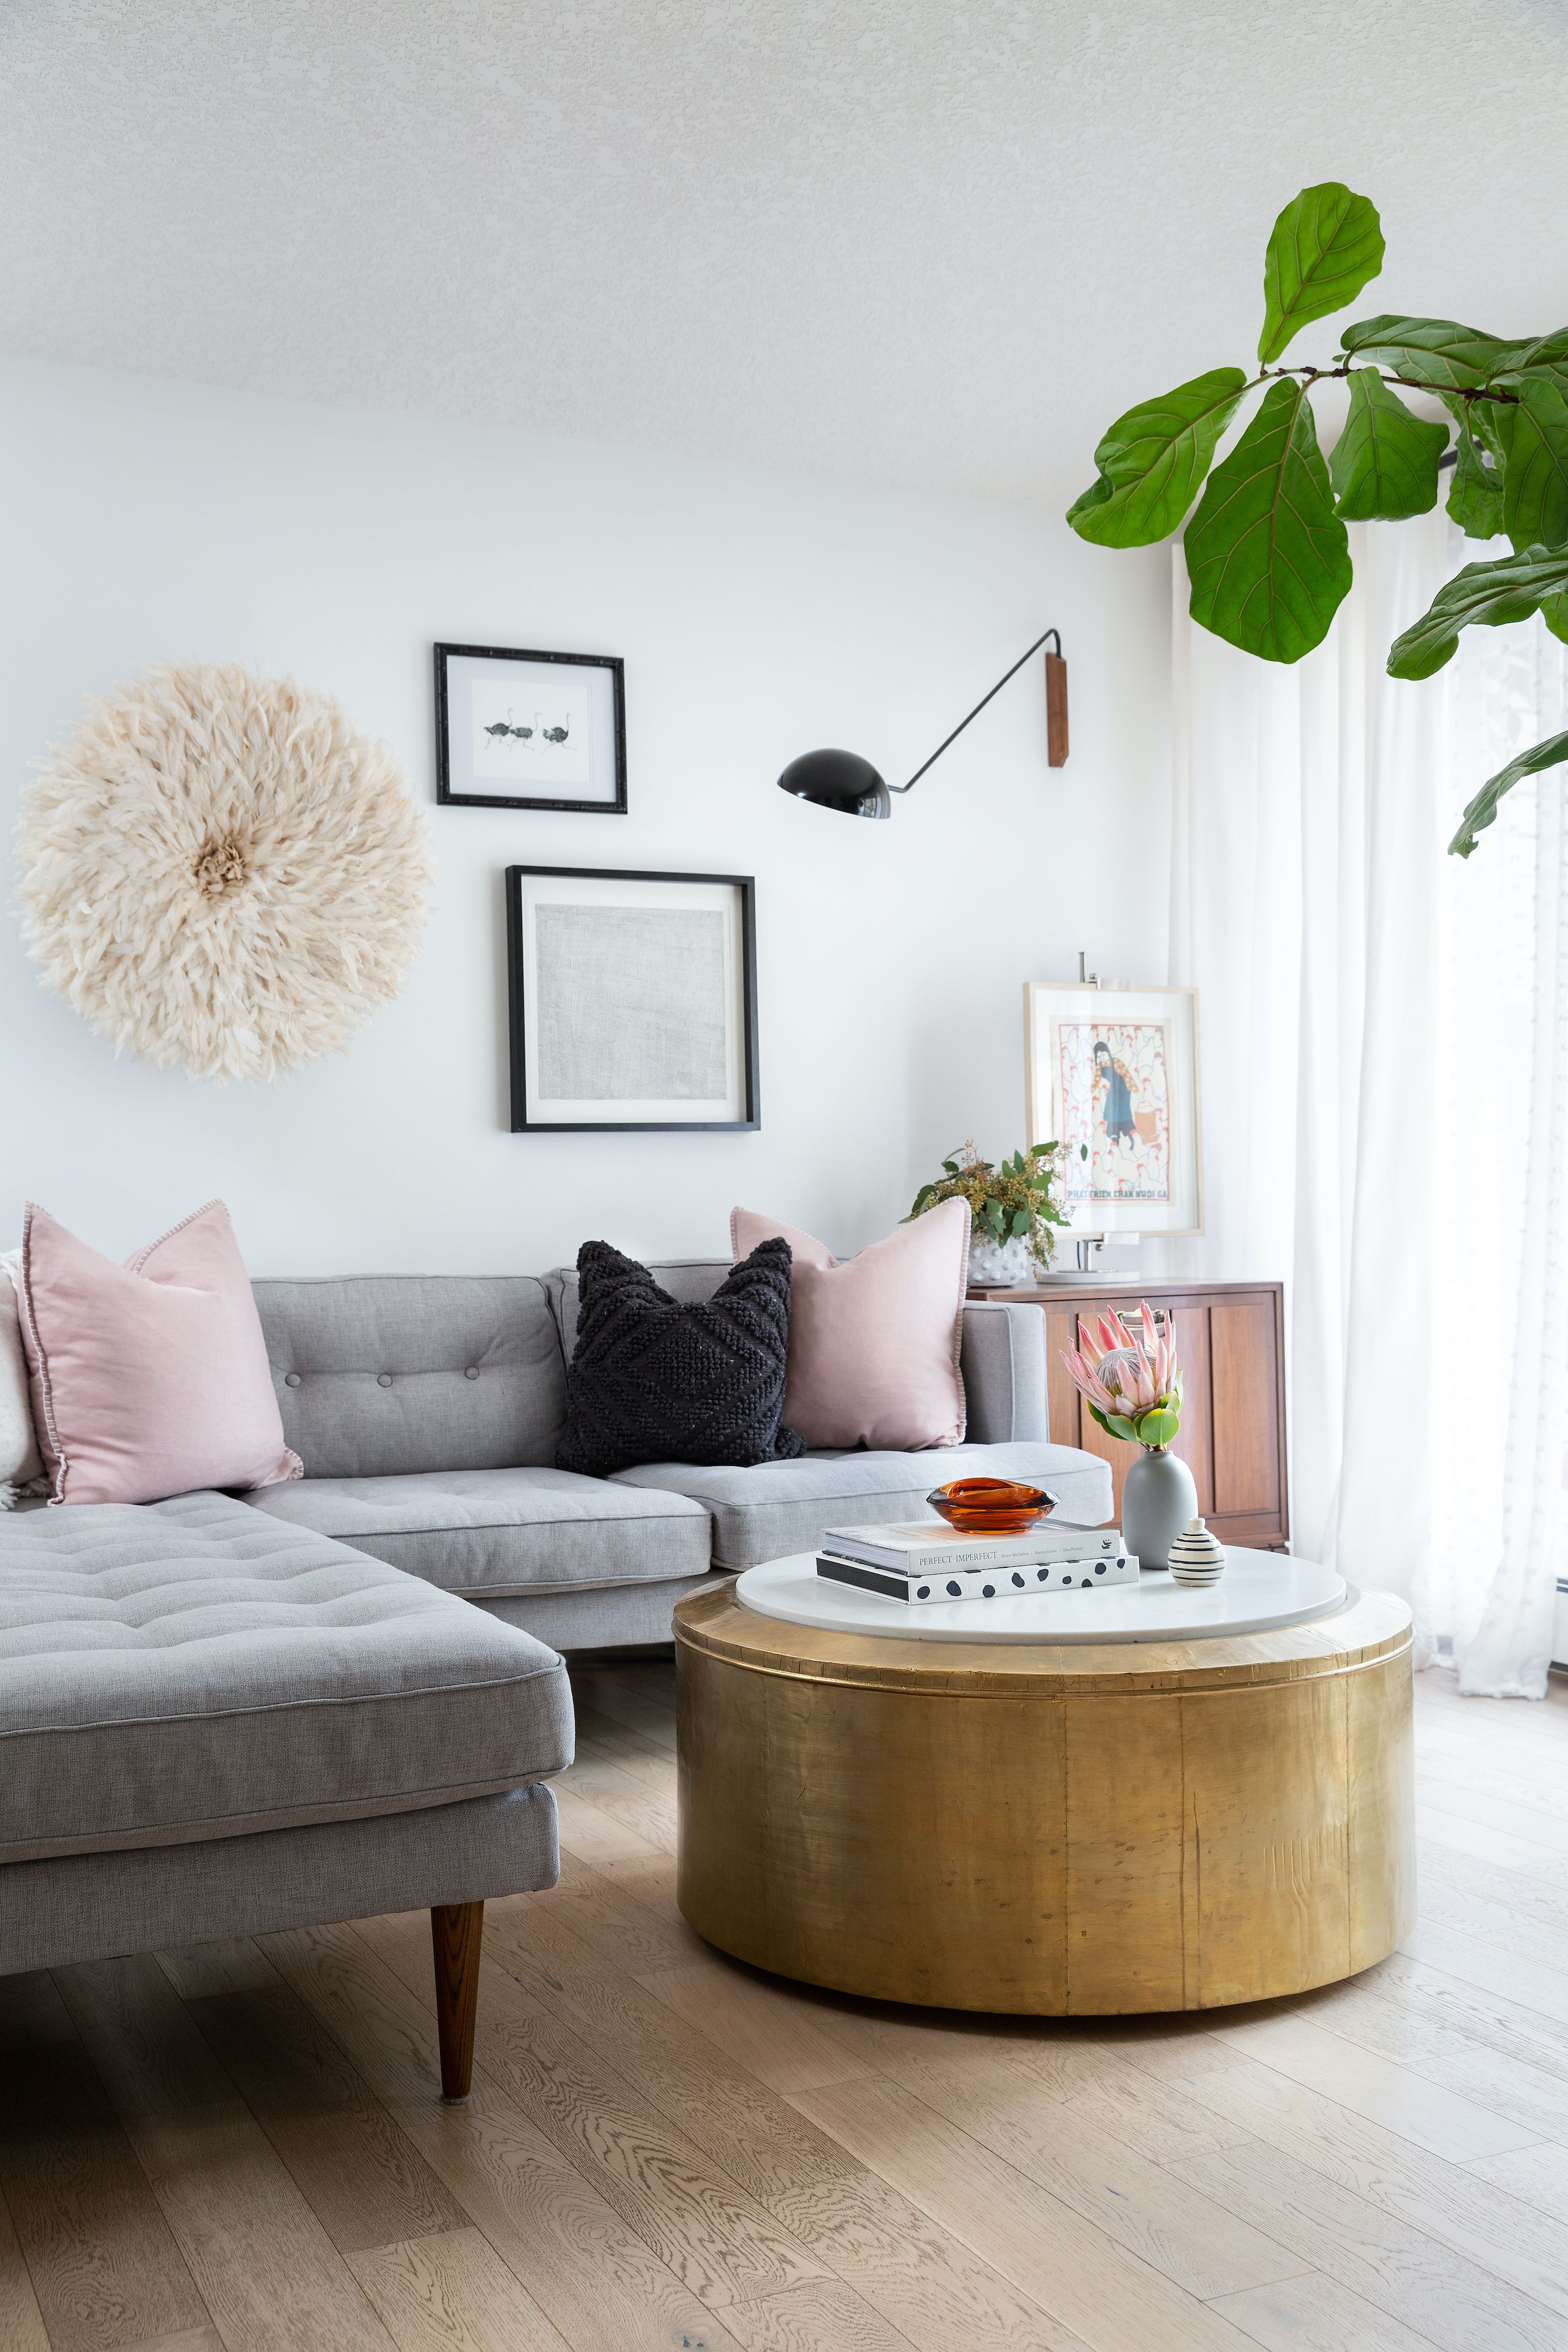 12 Small Room Décor Ideas That Are Almost Too Easy